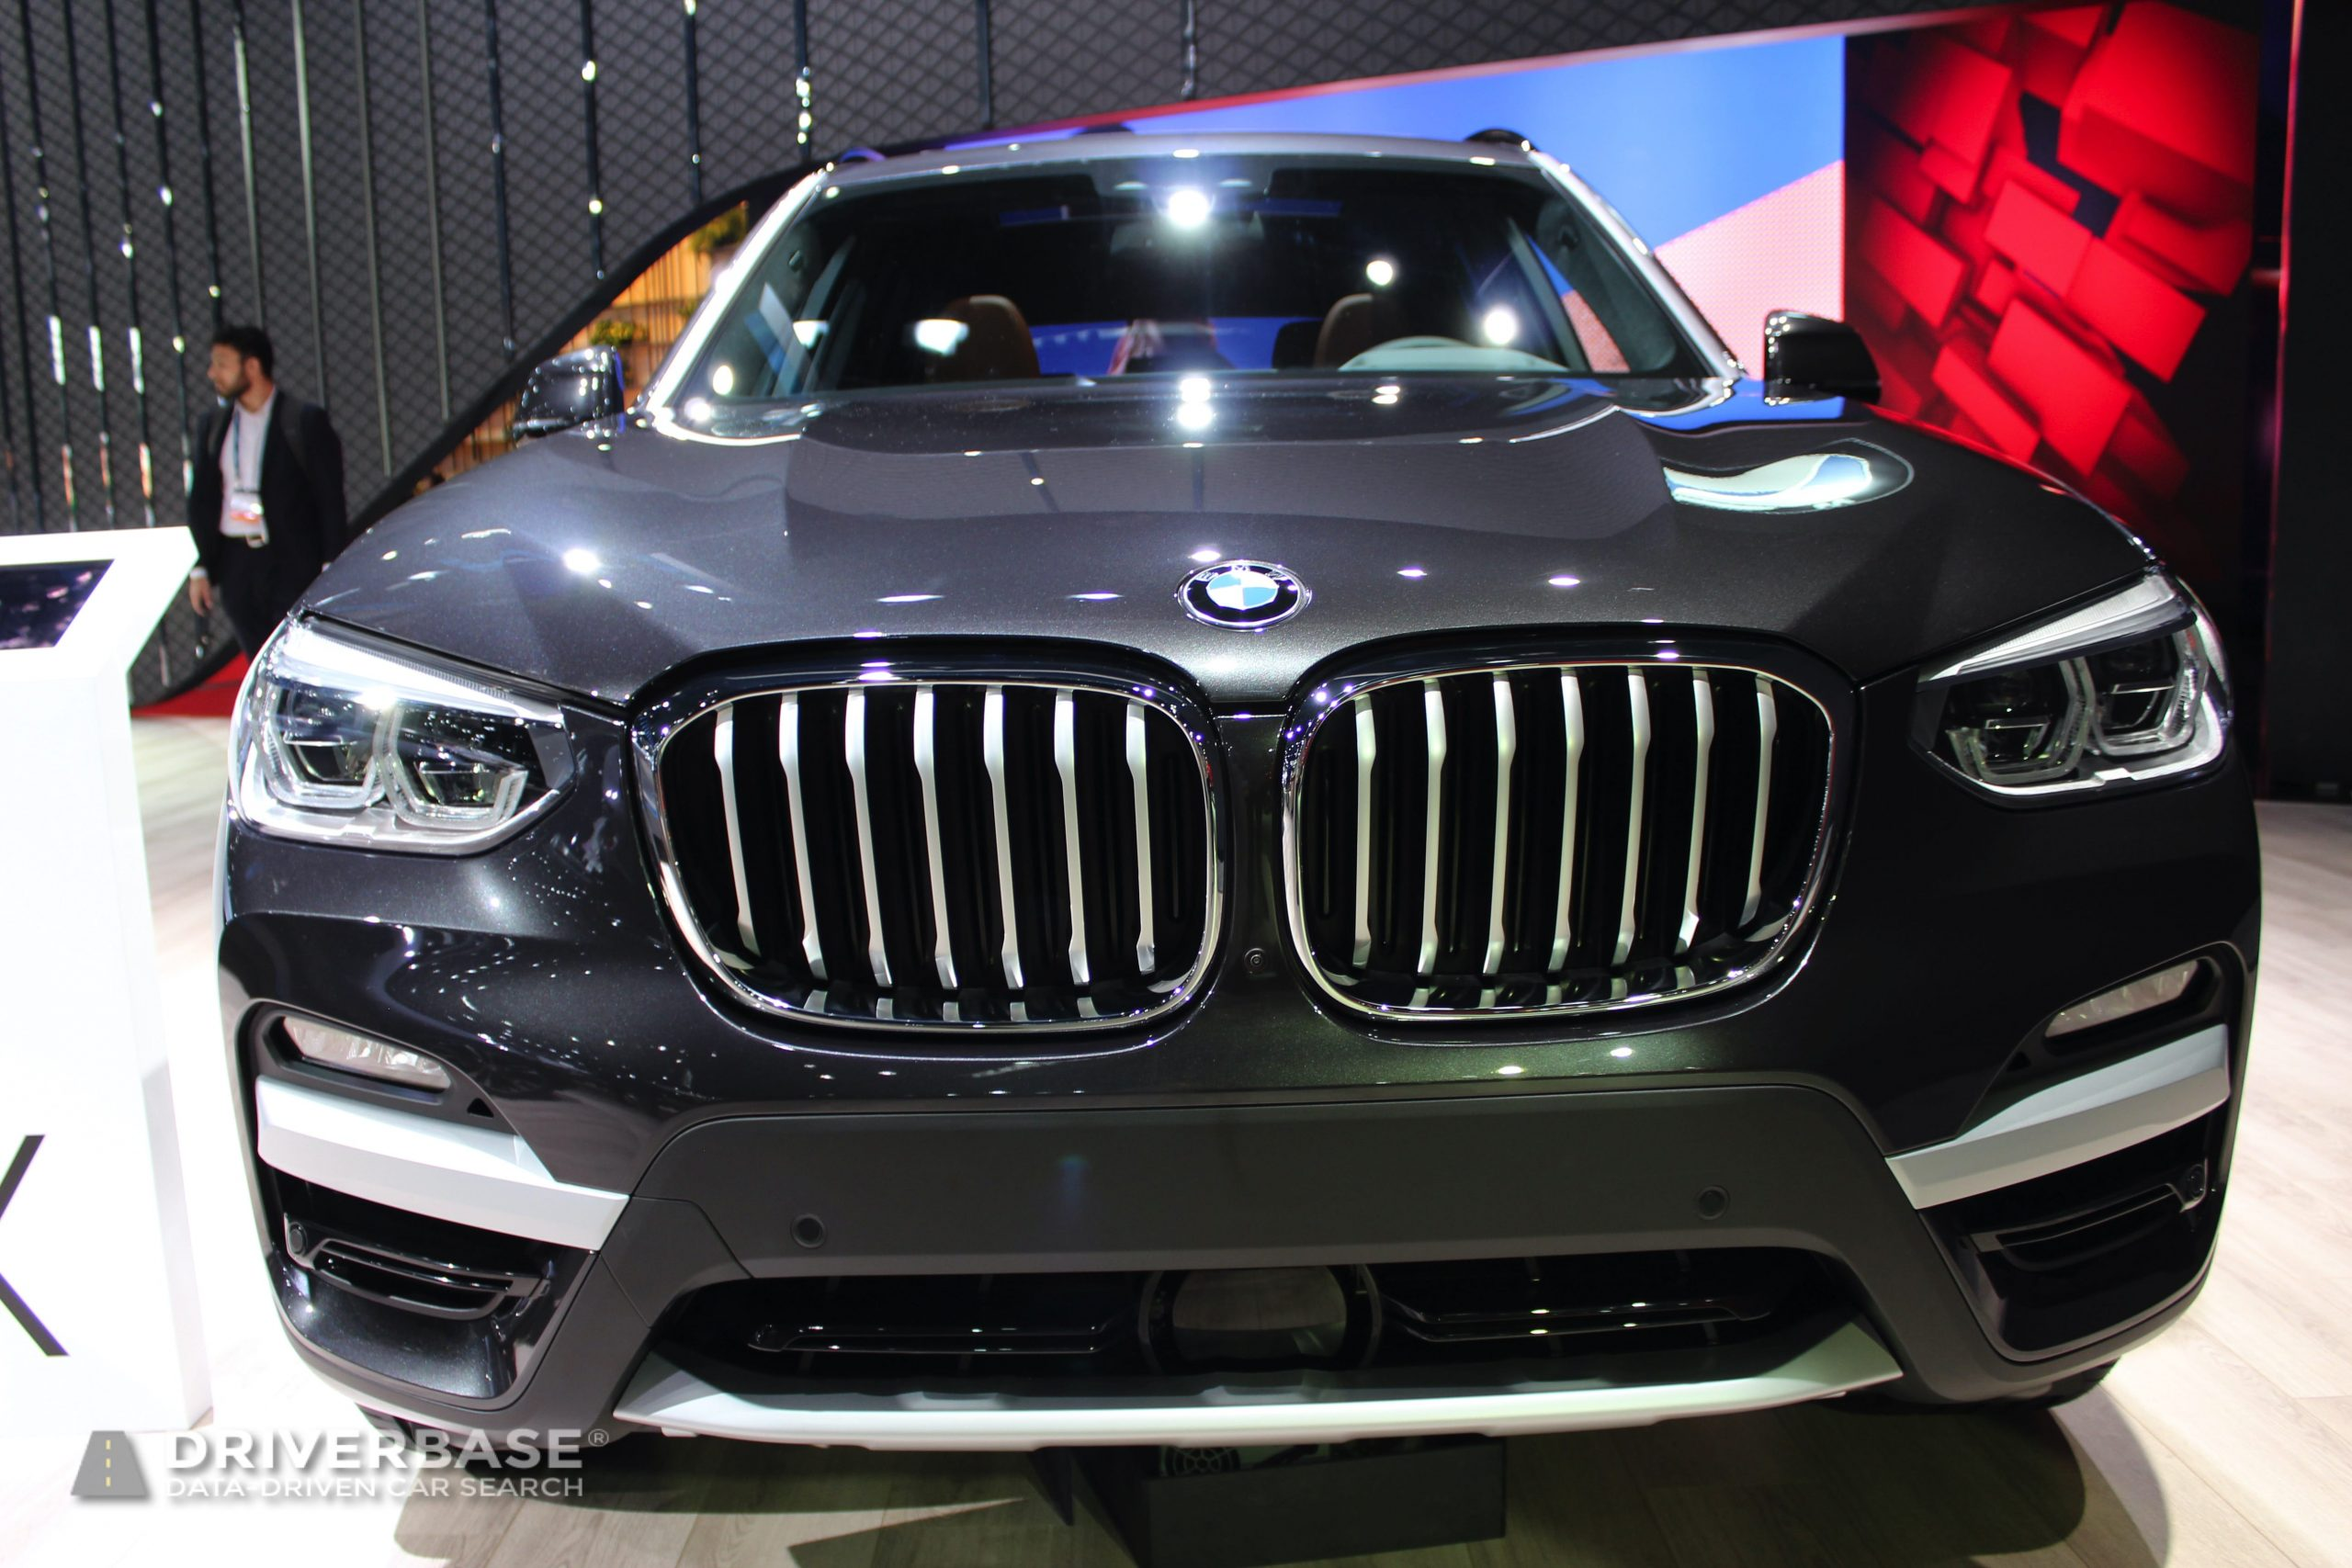 2020 BMW X3 30e at the 2019 Los Angeles Auto Show